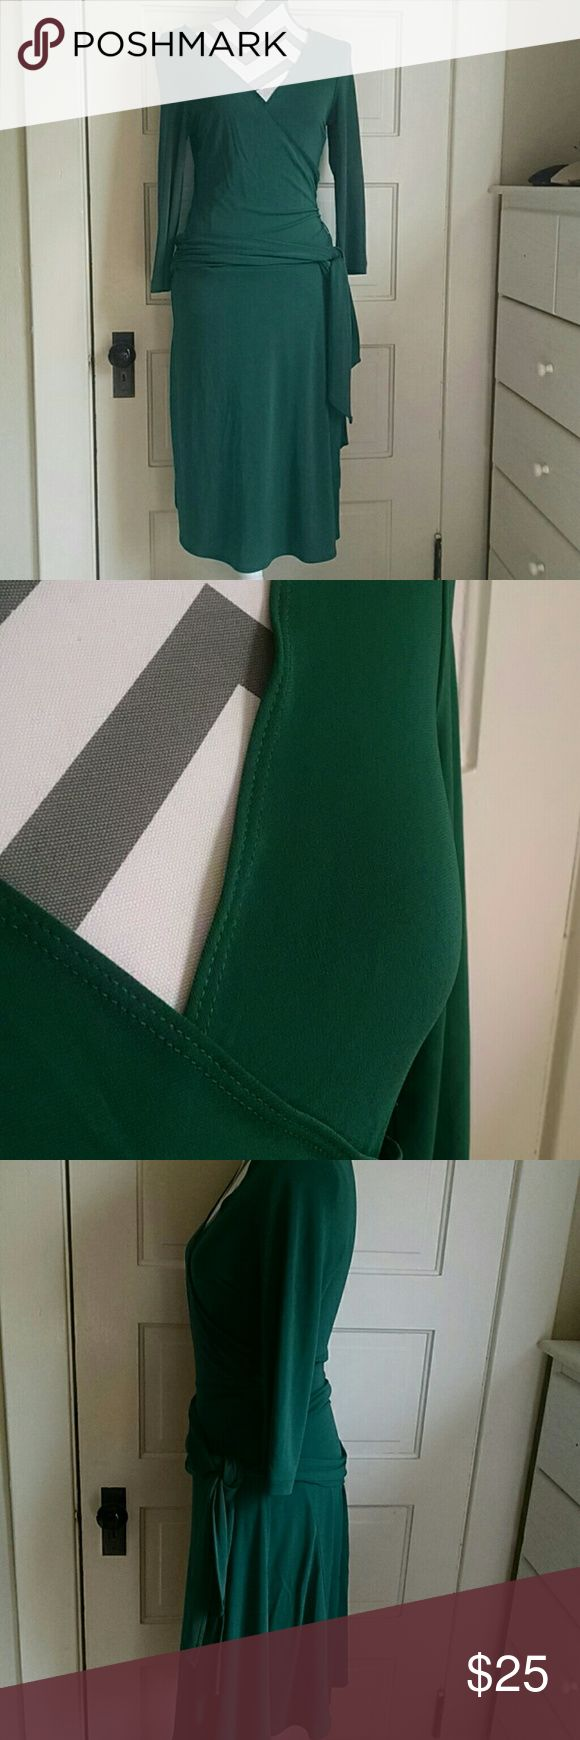 """Bcbg maxazaria surplus faux wrap dress M BCBGMAXAZARIA emerald green faux wrap surplus dress. Comes just below knee on me 5,3"""". Material has a nice weight to it. Attached wide waist belt. The V neck is open and can be adjusted and pinned depending how much skin you prefer to show. Worn once with a lace cami underneath. Just beautiful with some leggings and boots with this in between weather!! Size M. Perfect for St. Patrick's day date!!! BCBGMaxAzria Dresses Midi"""